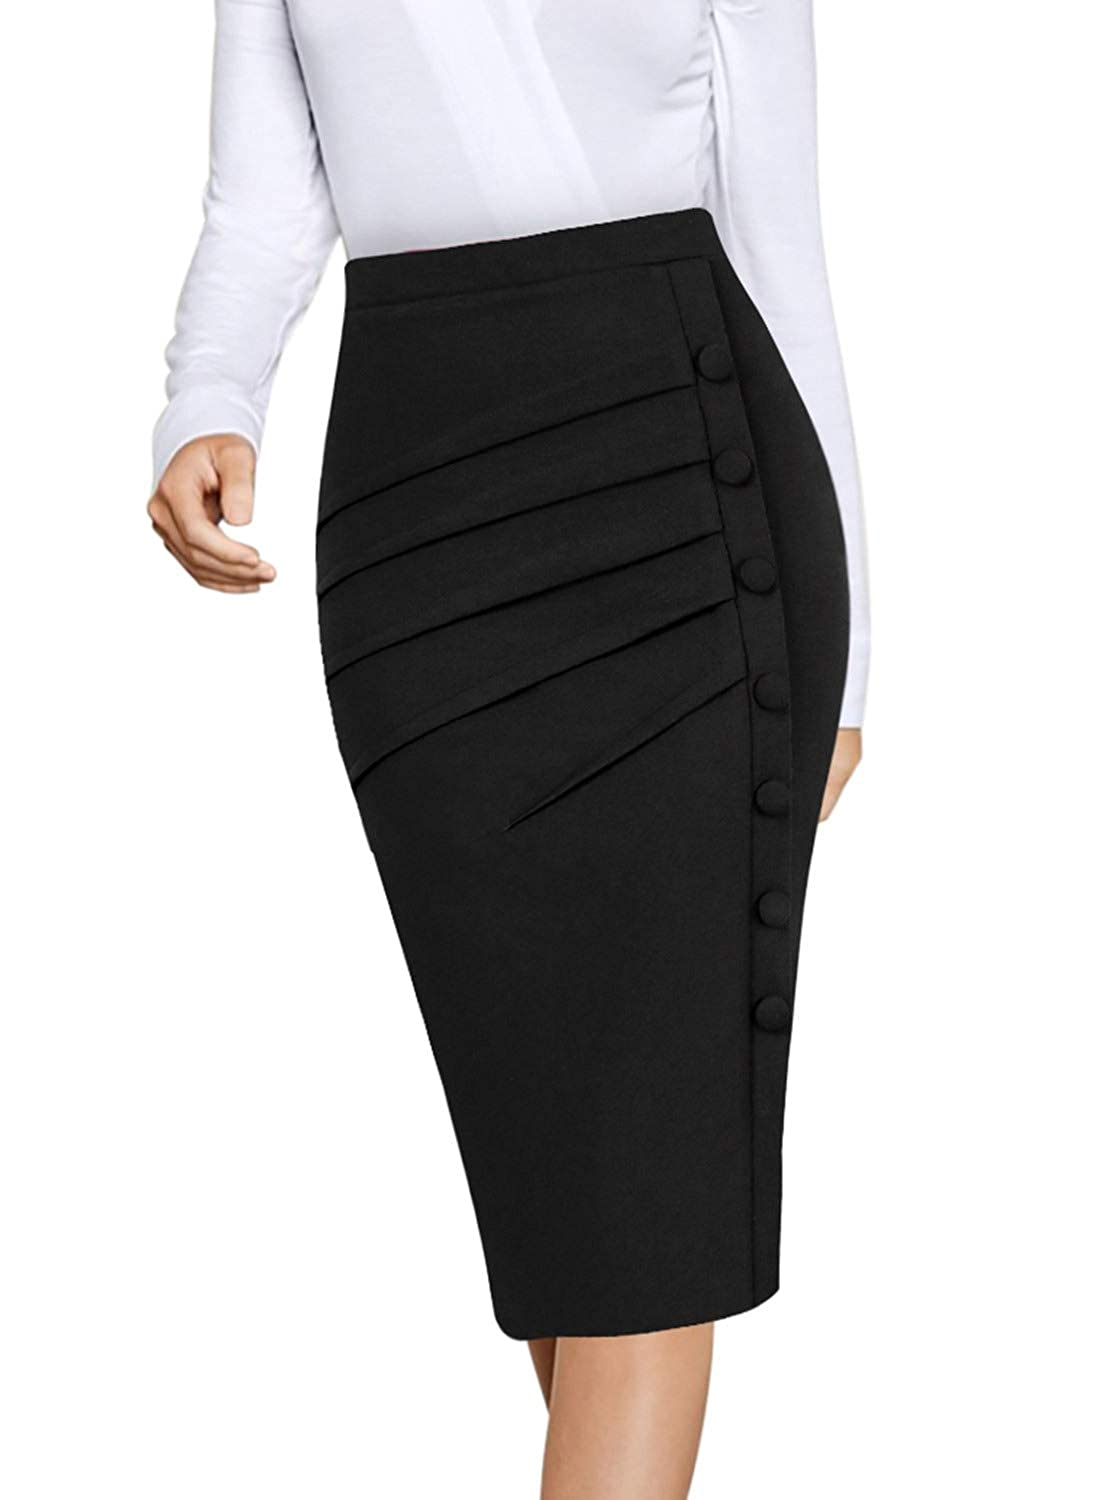 VFSHOW Womens Pleated Buttons High Waist Wear to Work Office Pencil Skirt